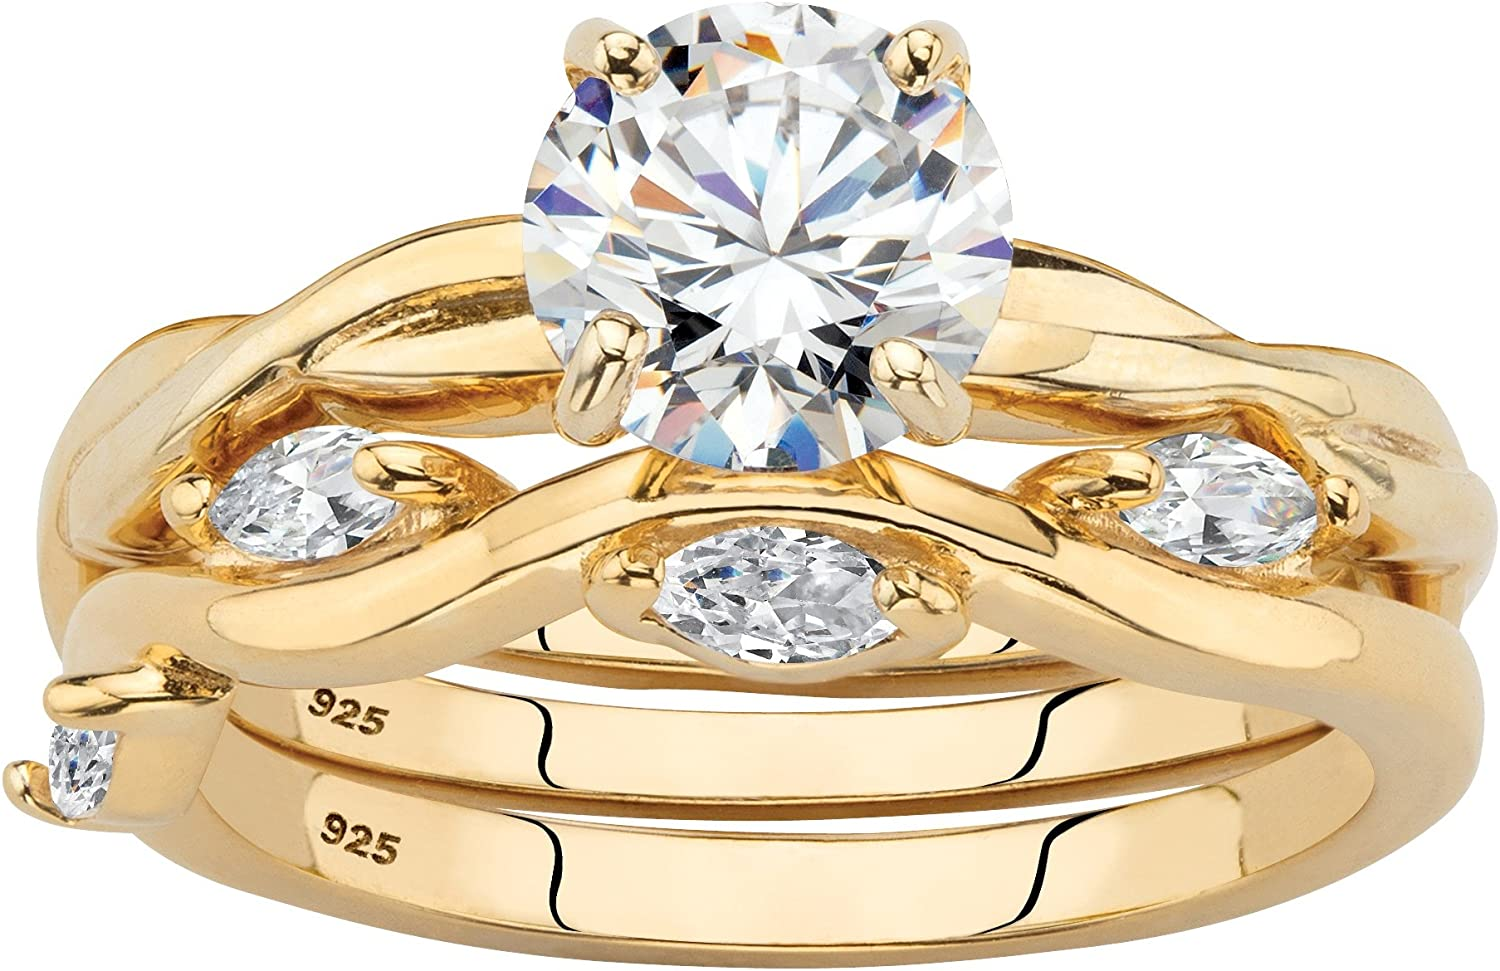 14K Yellow Gold over Sterling Silver Round and Marquise Cut Cubic Zirconia 2 Piece Twisted Vine Bridal Ring Set